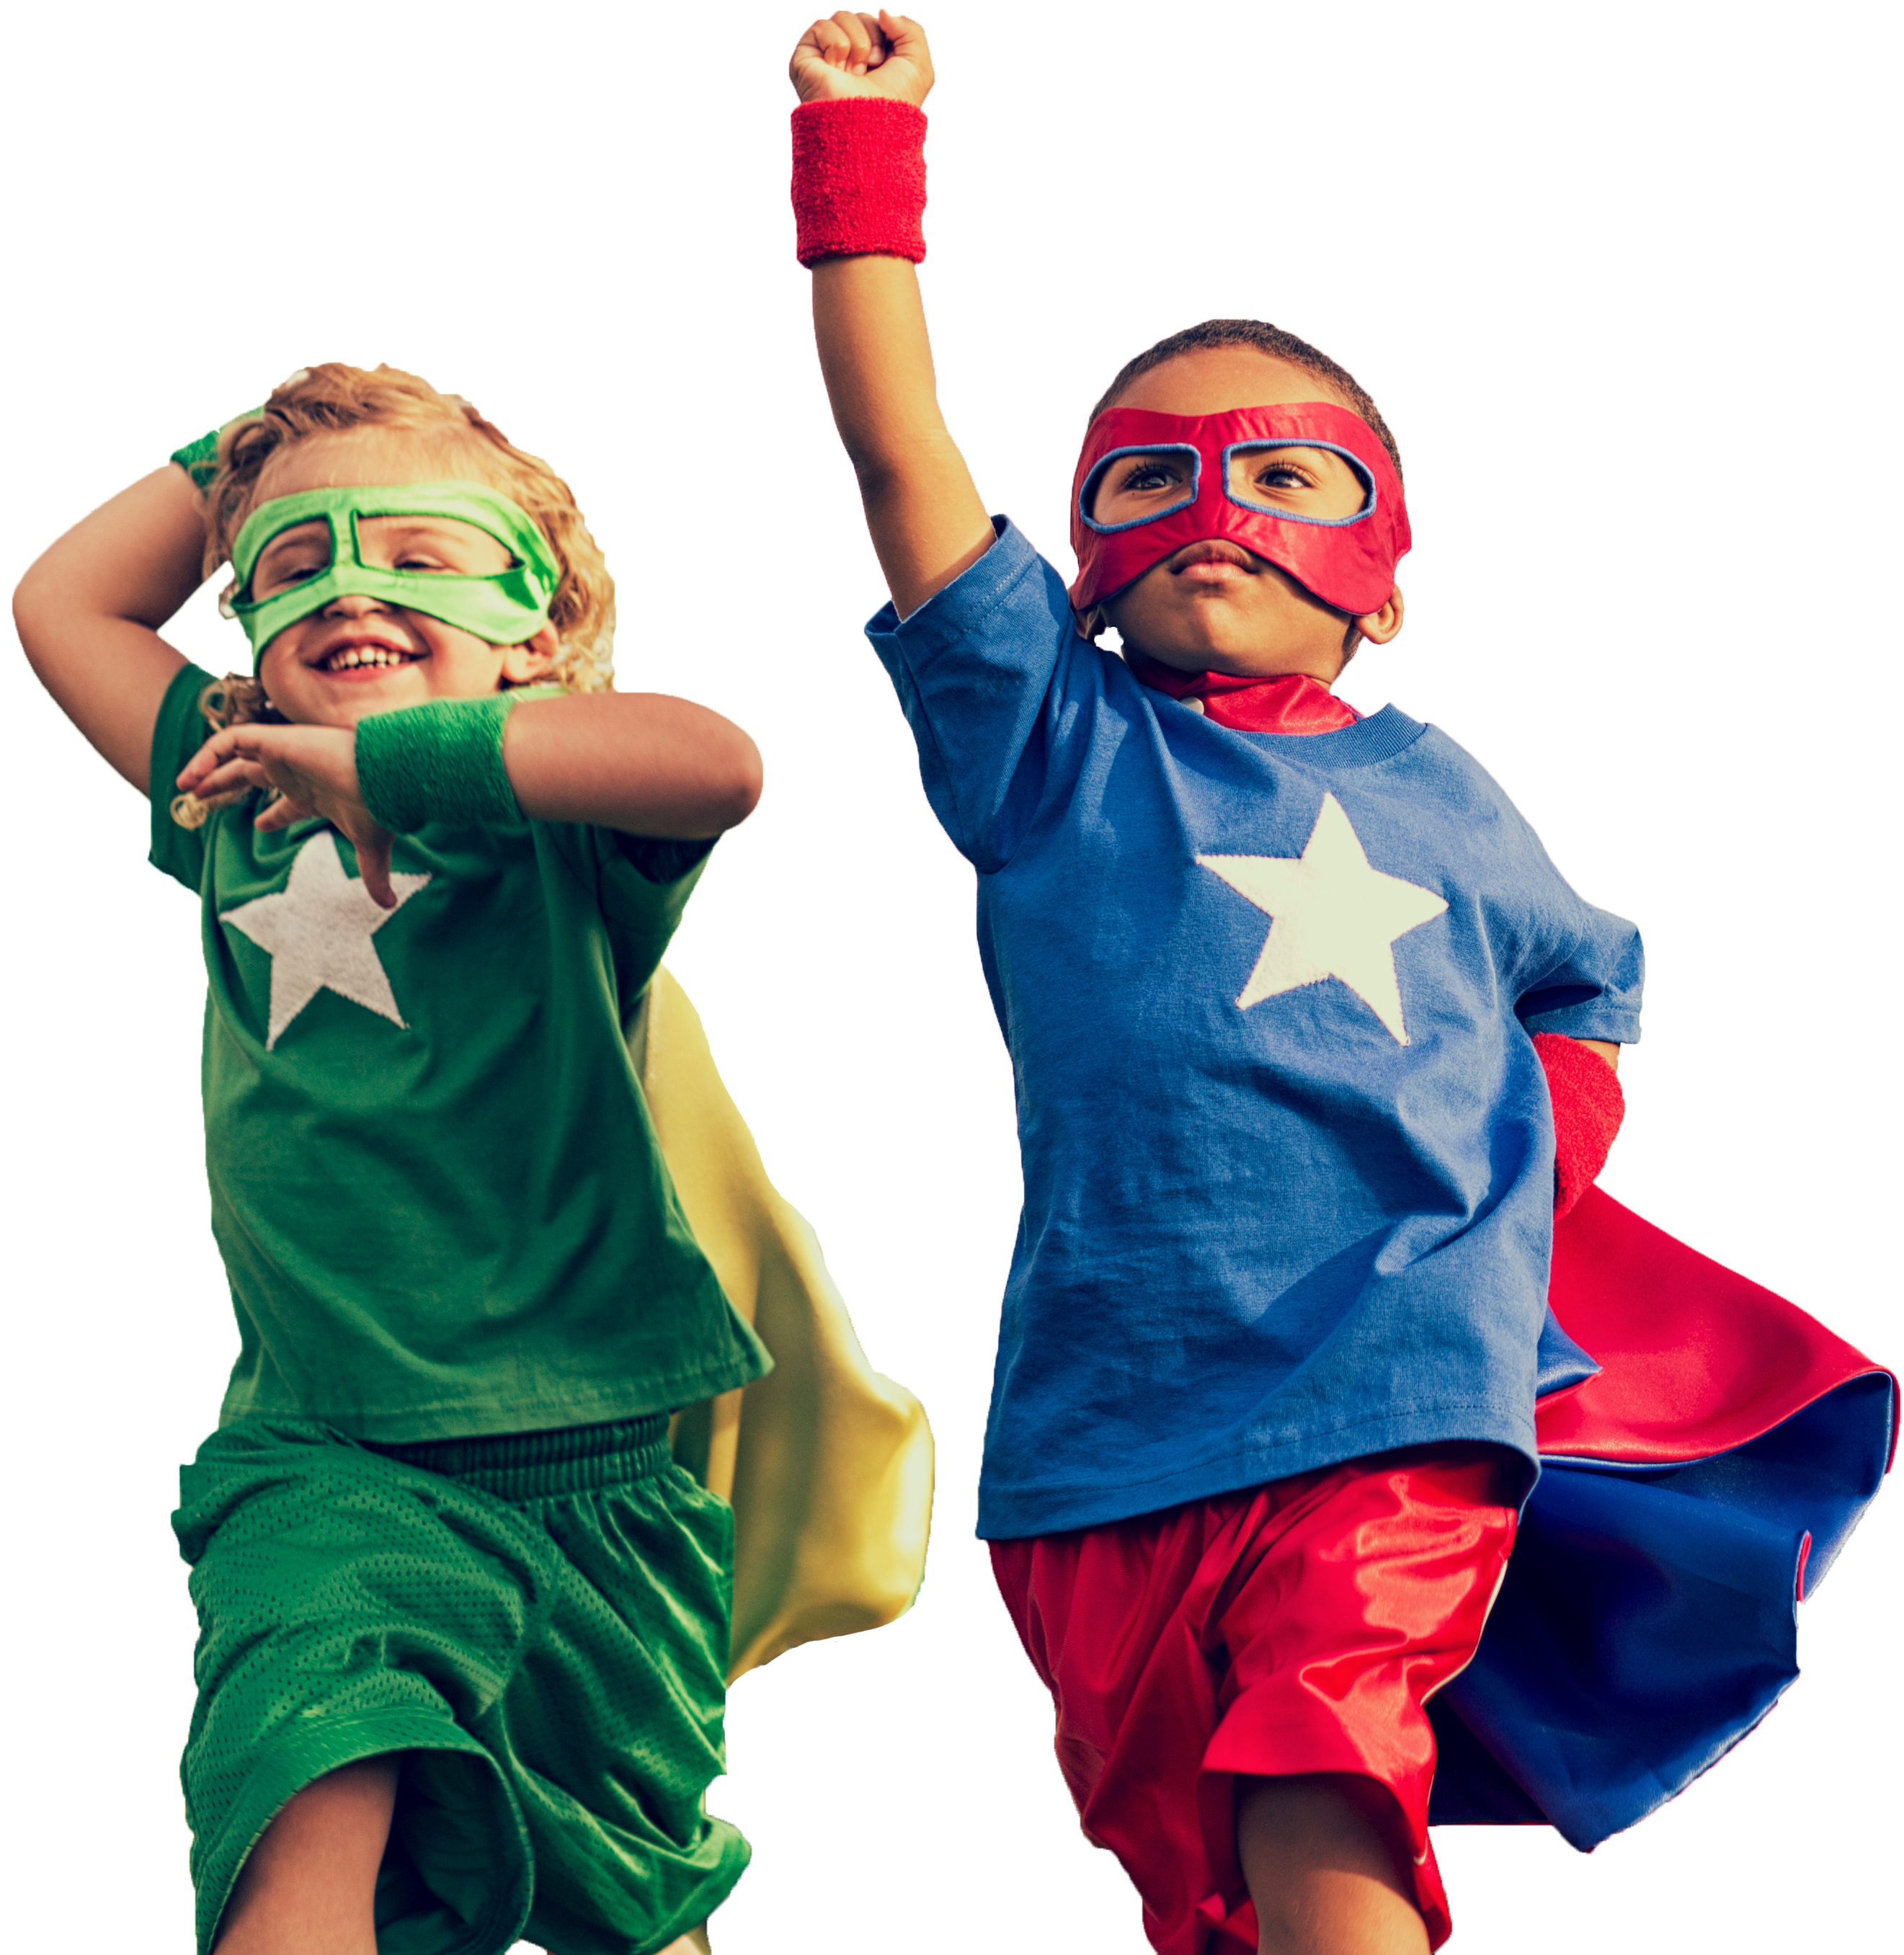 Two young children dressed as superheroes